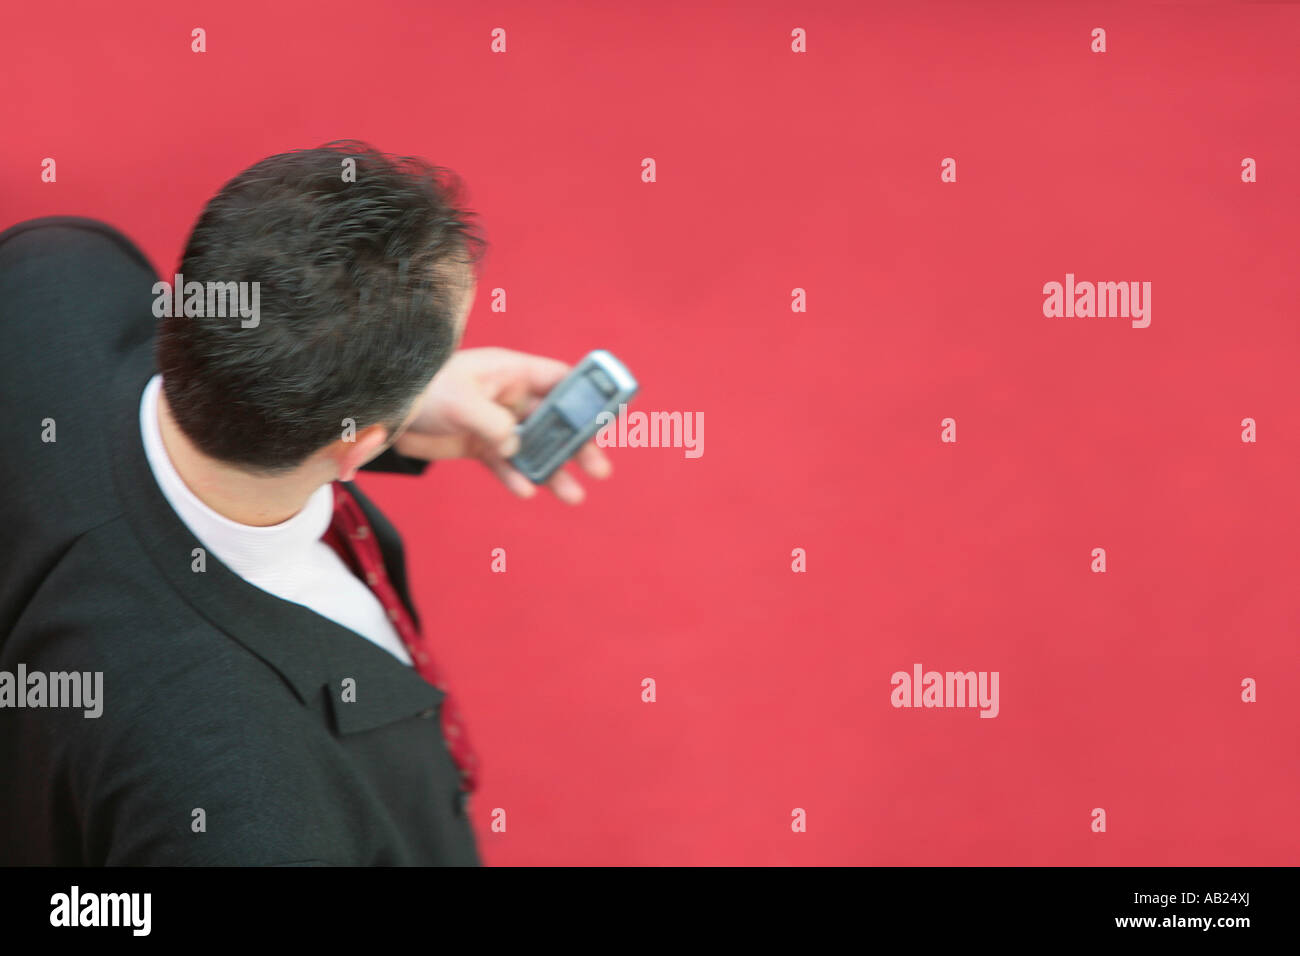 manage with a mobile phone on a red carpet Manager mit Handy auf einem roten Teppich - Stock Image